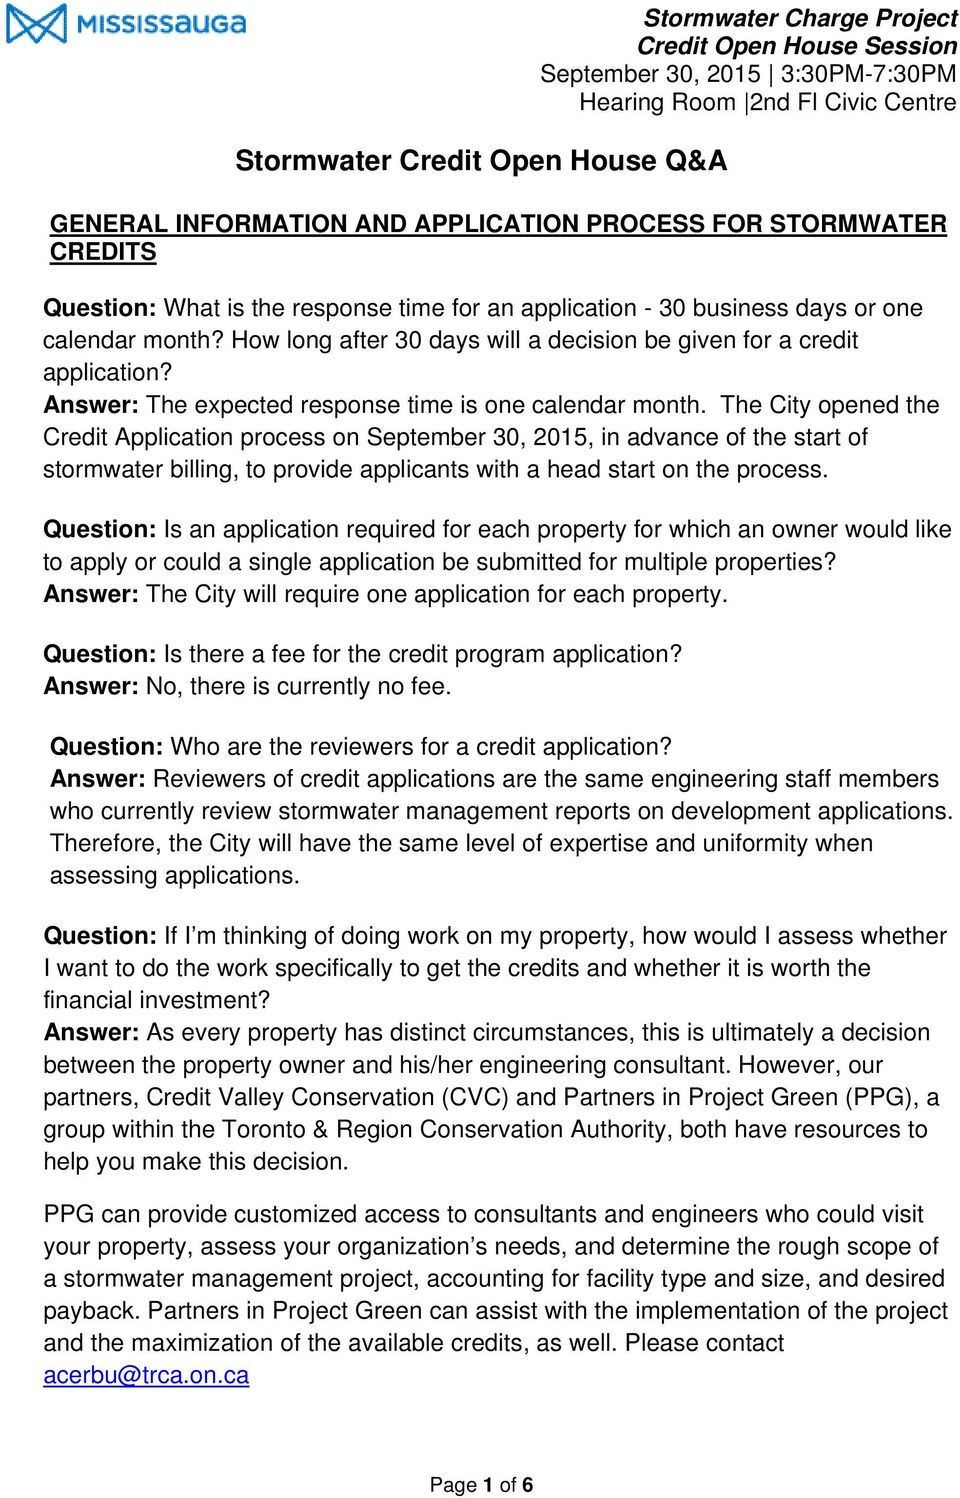 The City opened the Credit Application process on September 30, 2015, in advance of the start of stormwater billing, to provide applicants with a head start on the process.